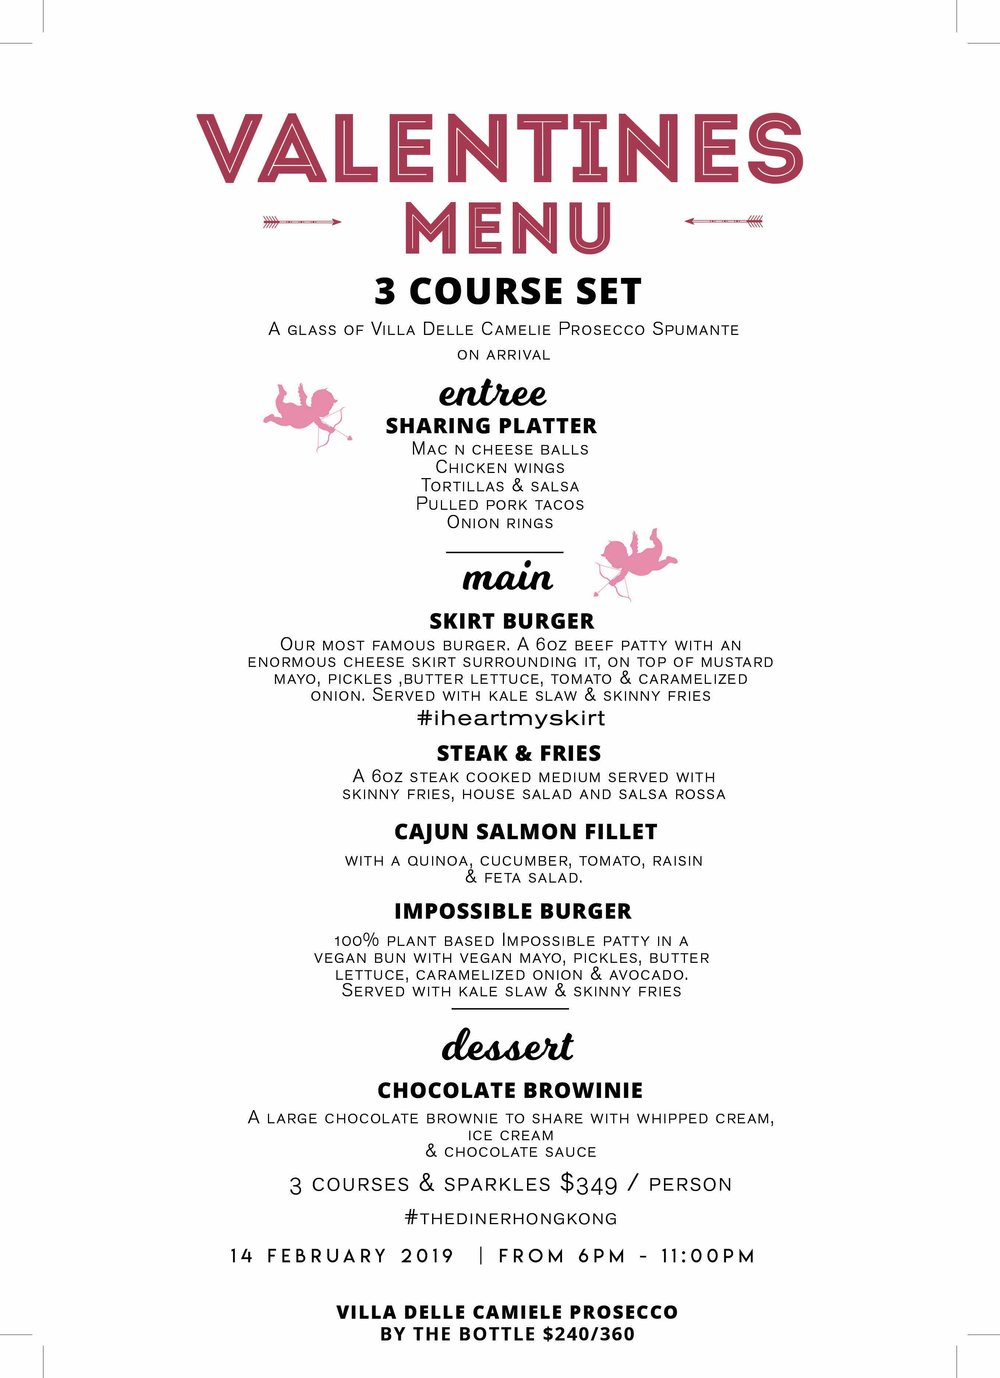 Valentines Menu 2019 copy.jpg